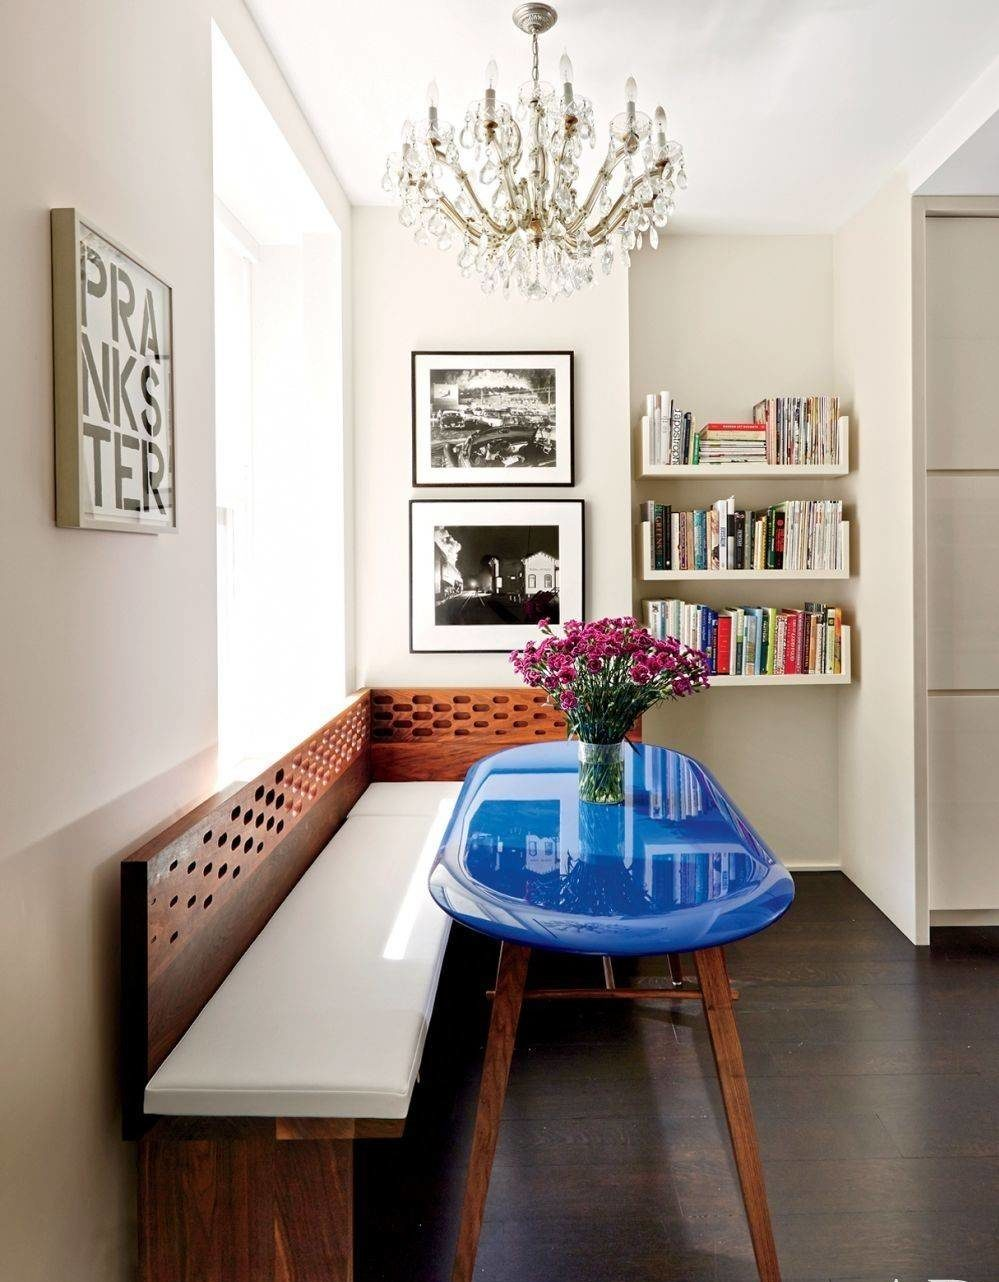 Cozy Breakfast Nooks That Make You Never Want To Eat Out For Brunch Again